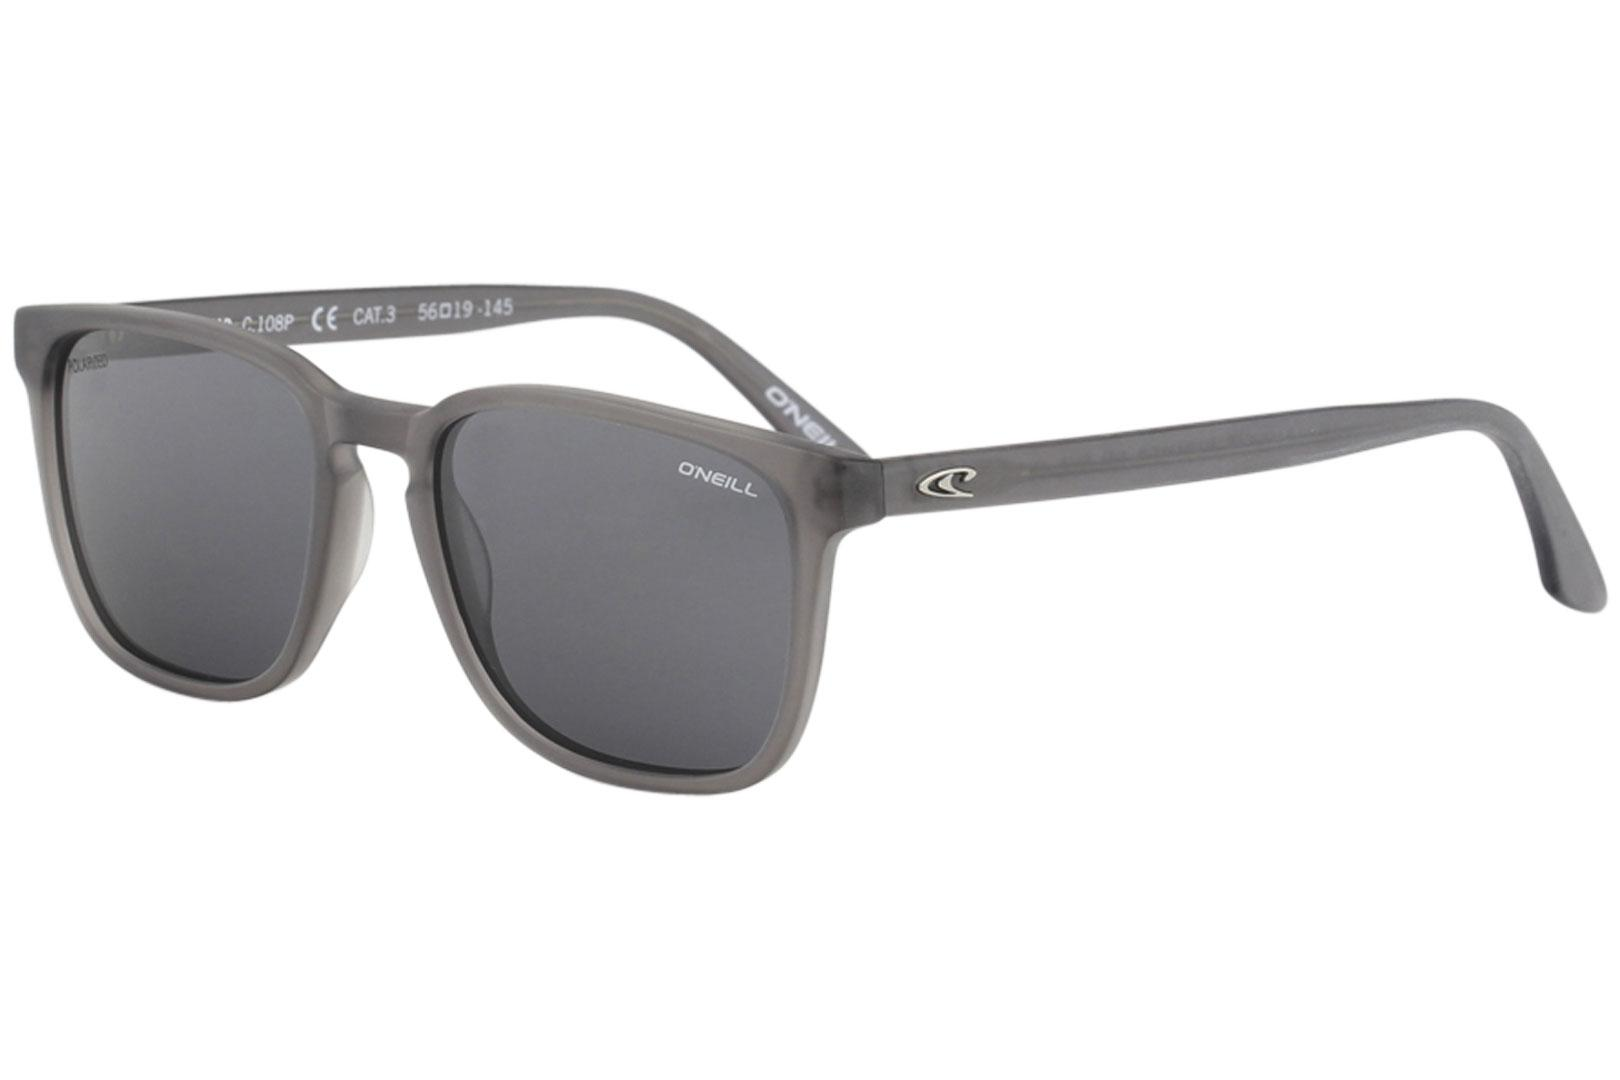 Image of O'Neill Men's Ons Chad Fashion Square Sunglasses - Crystal Grey/Grey Polarized   108 P - Lens 56 Bridge 19 Temple 145mm